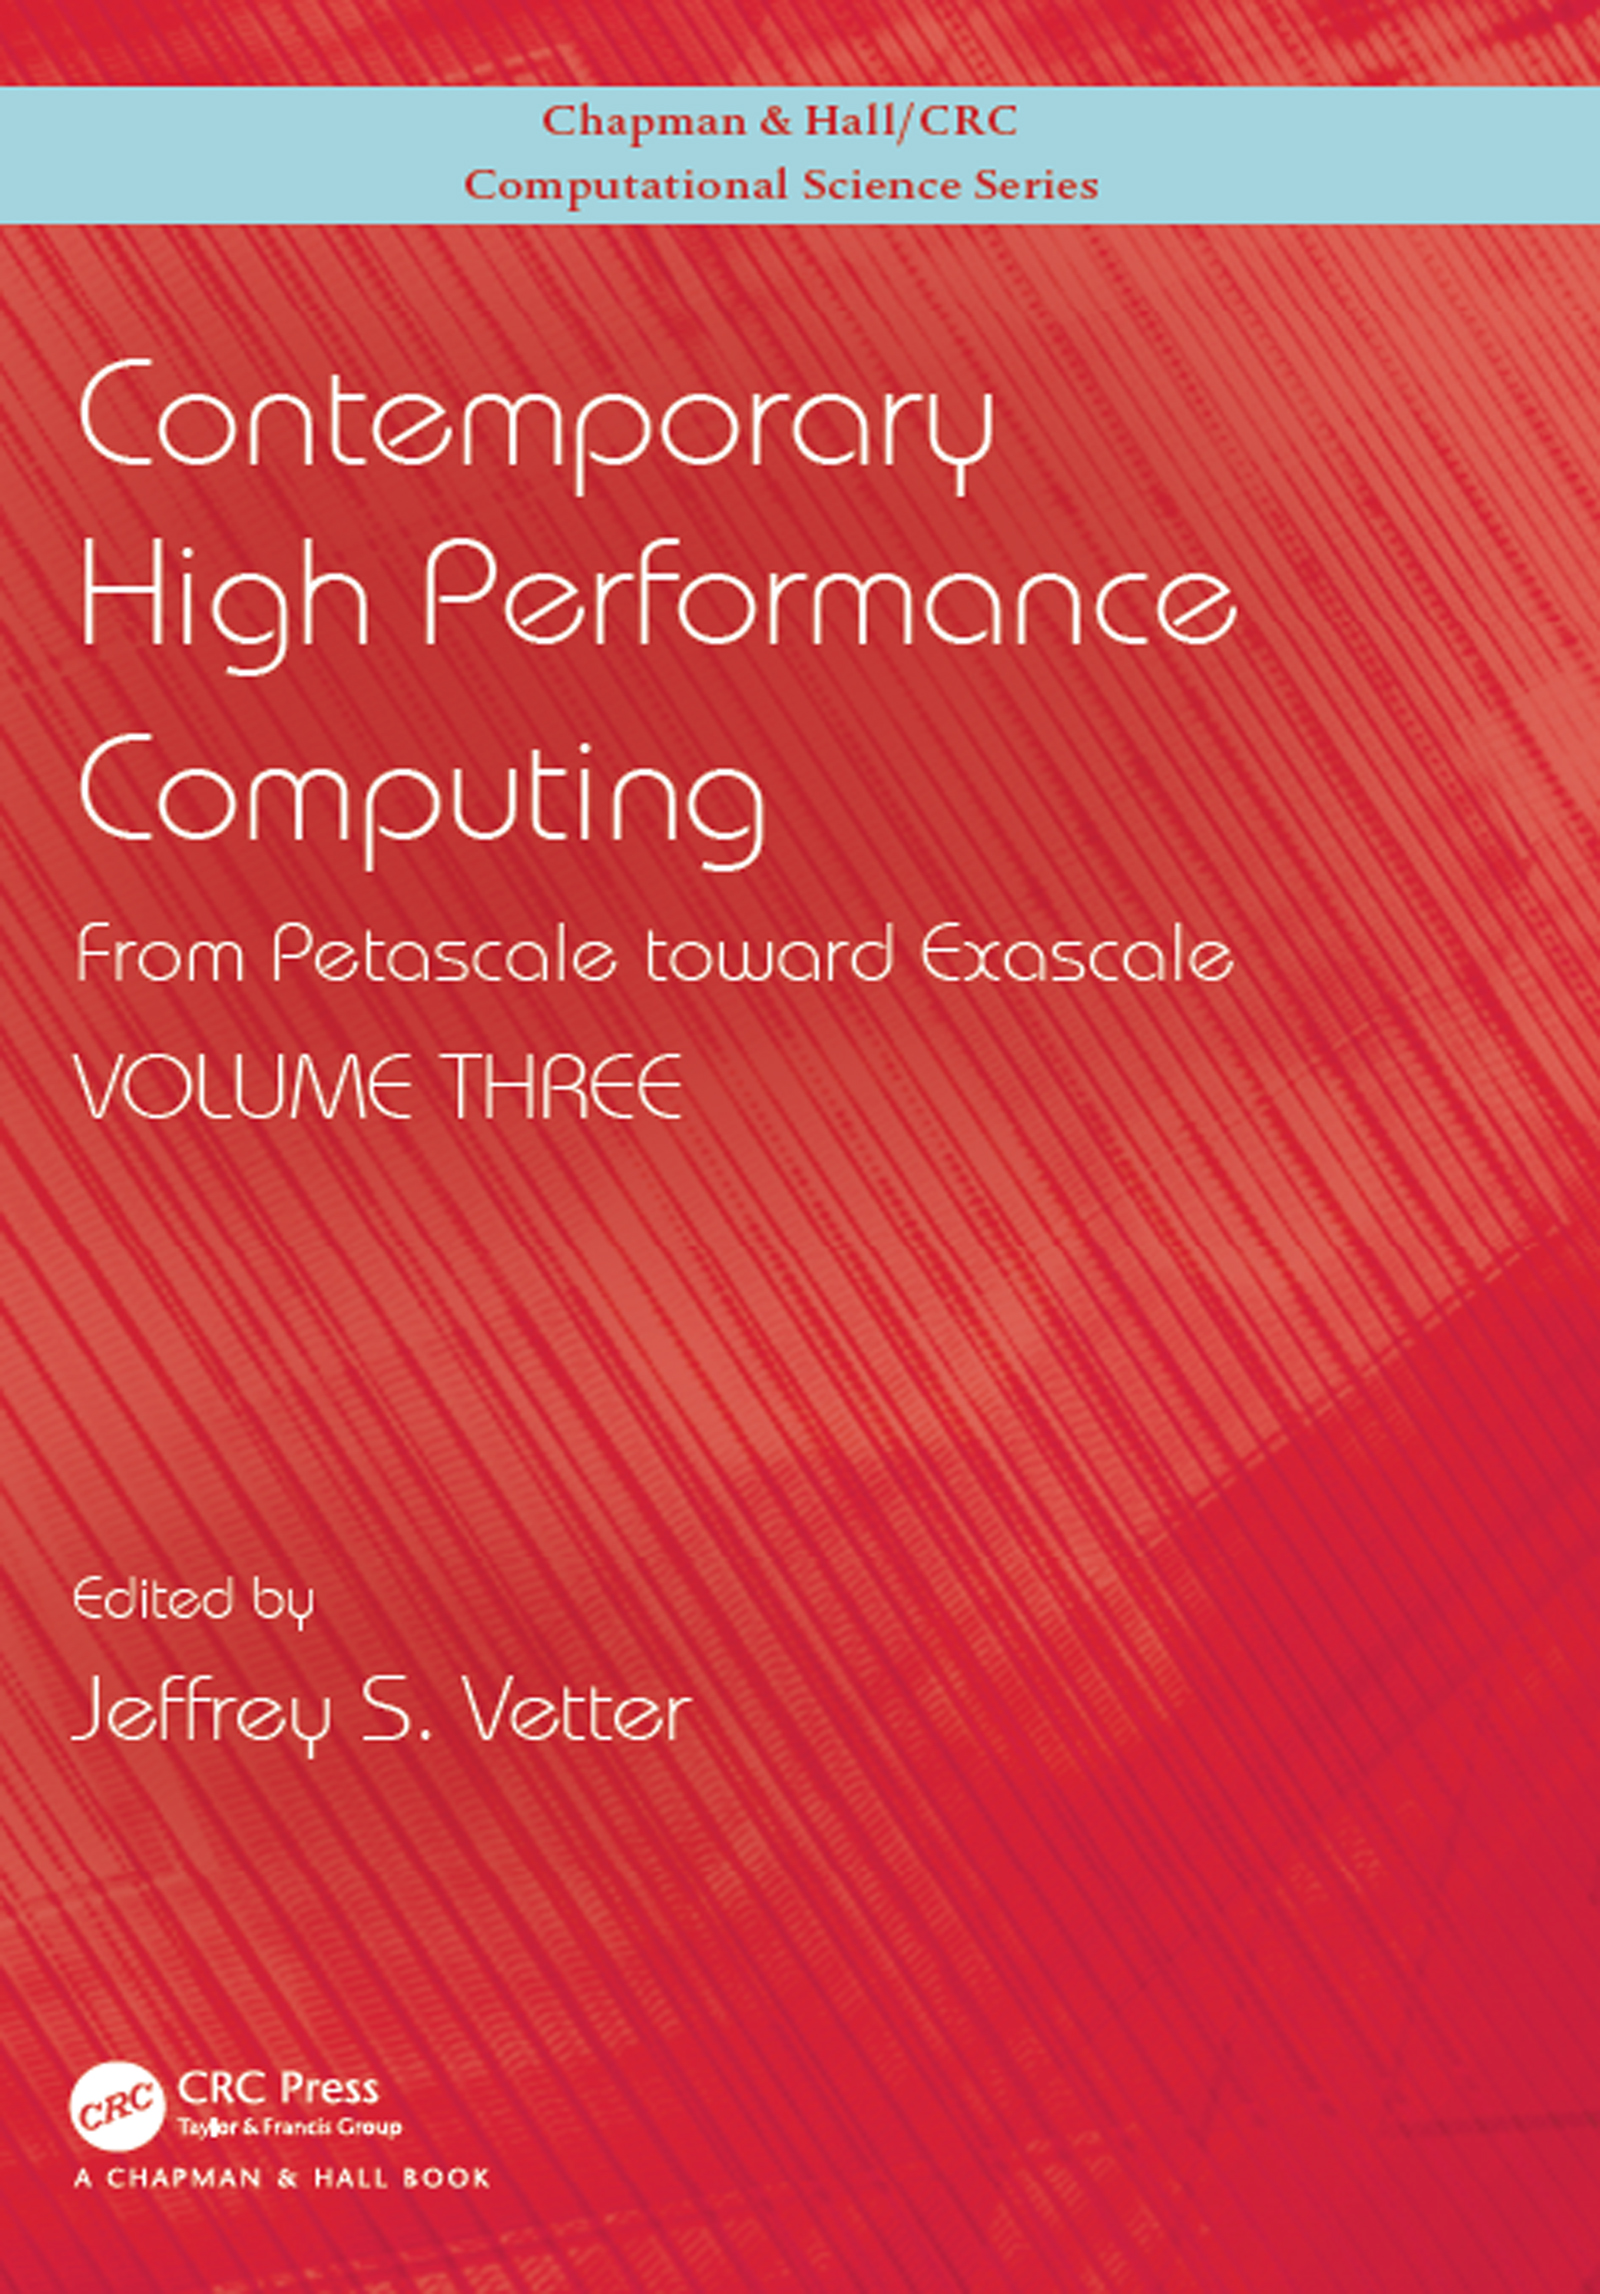 Contemporary High Performance Computing: From Petascale toward Exascale, Volume 3 book cover